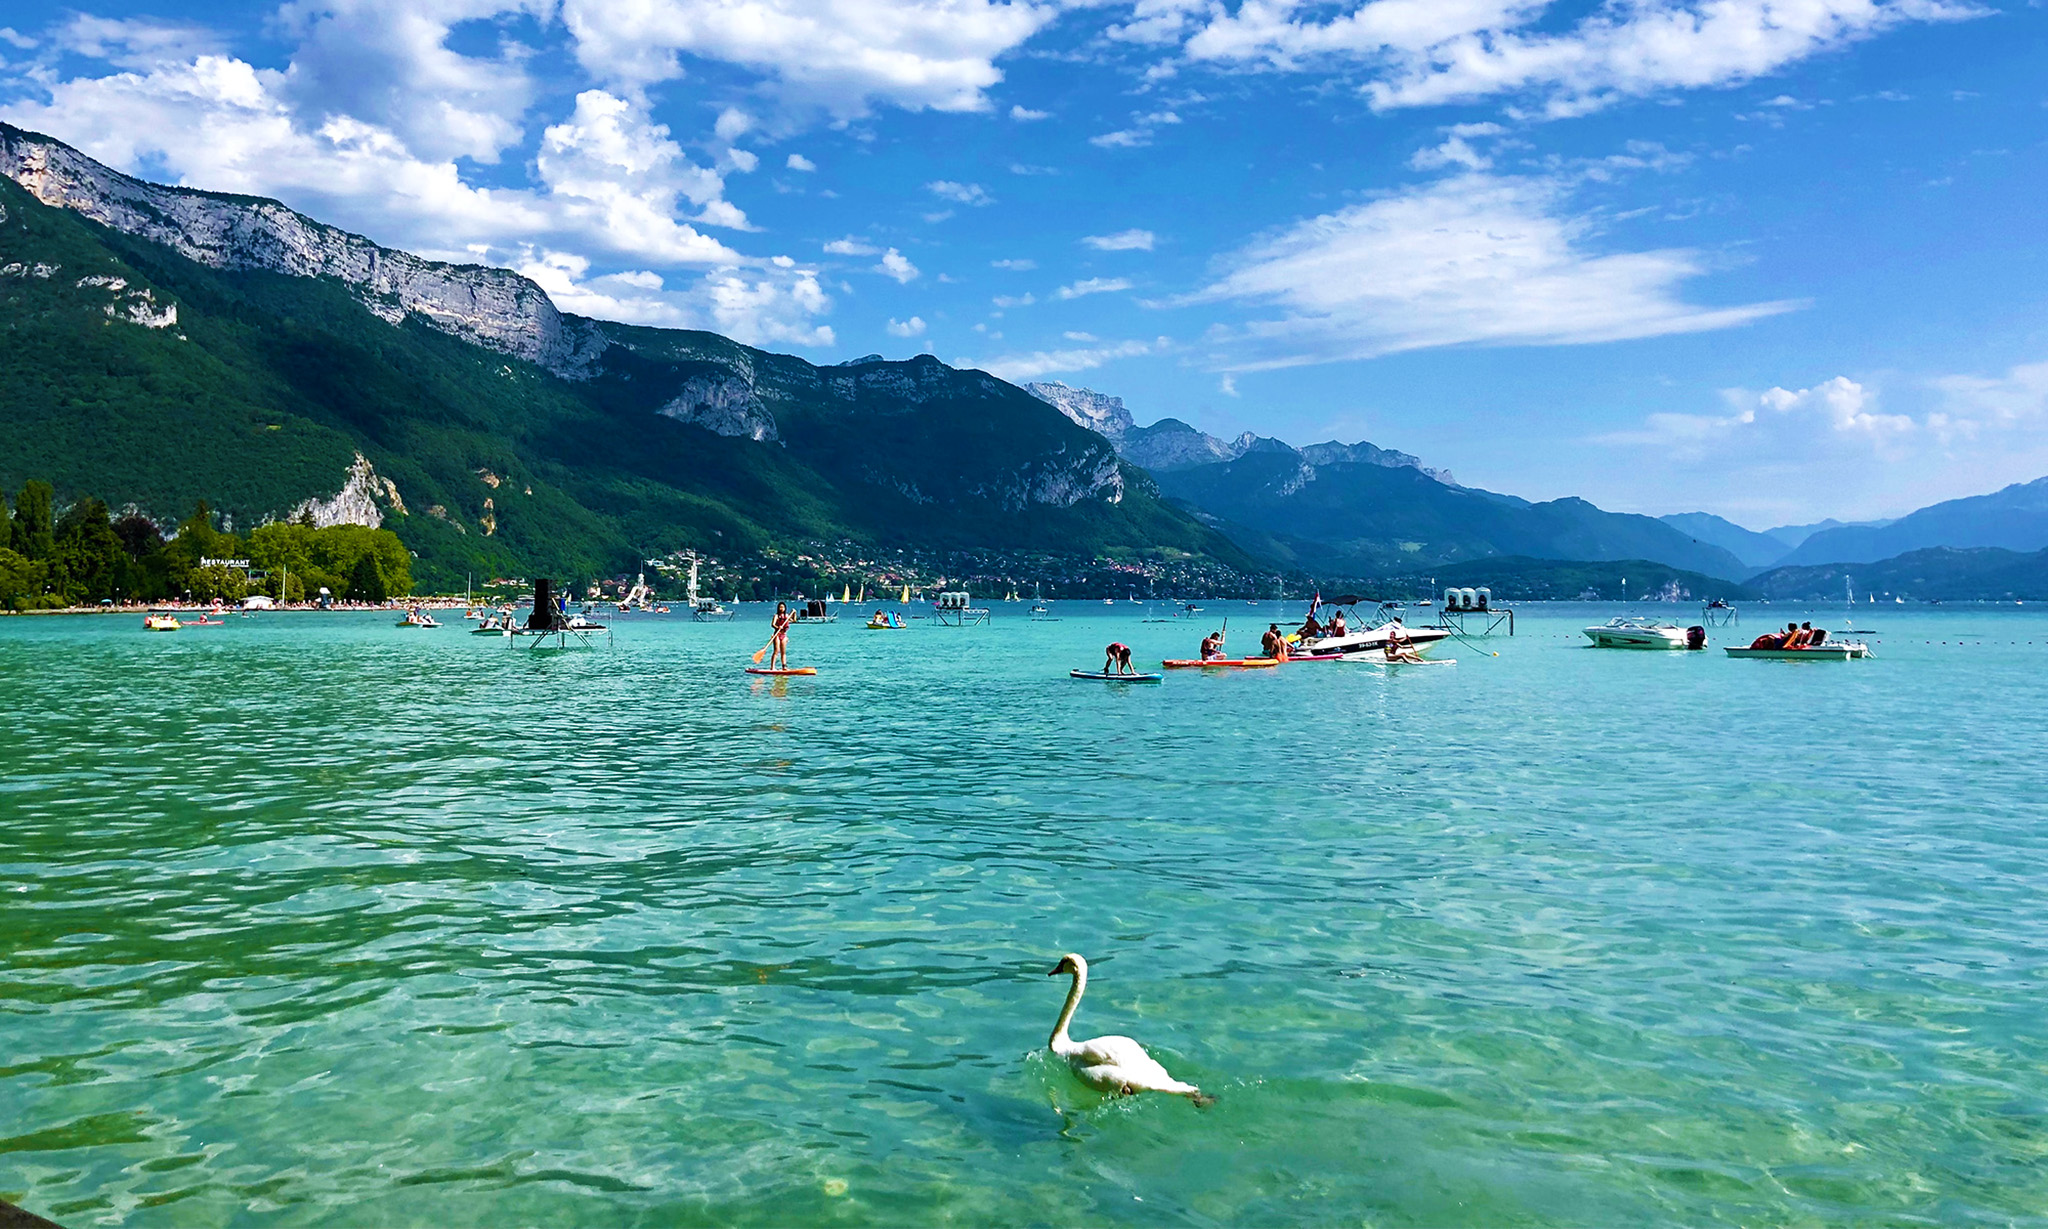 kt_2020_370_Keytours_excursions_Swisstours_annecy_lac4_2048_10